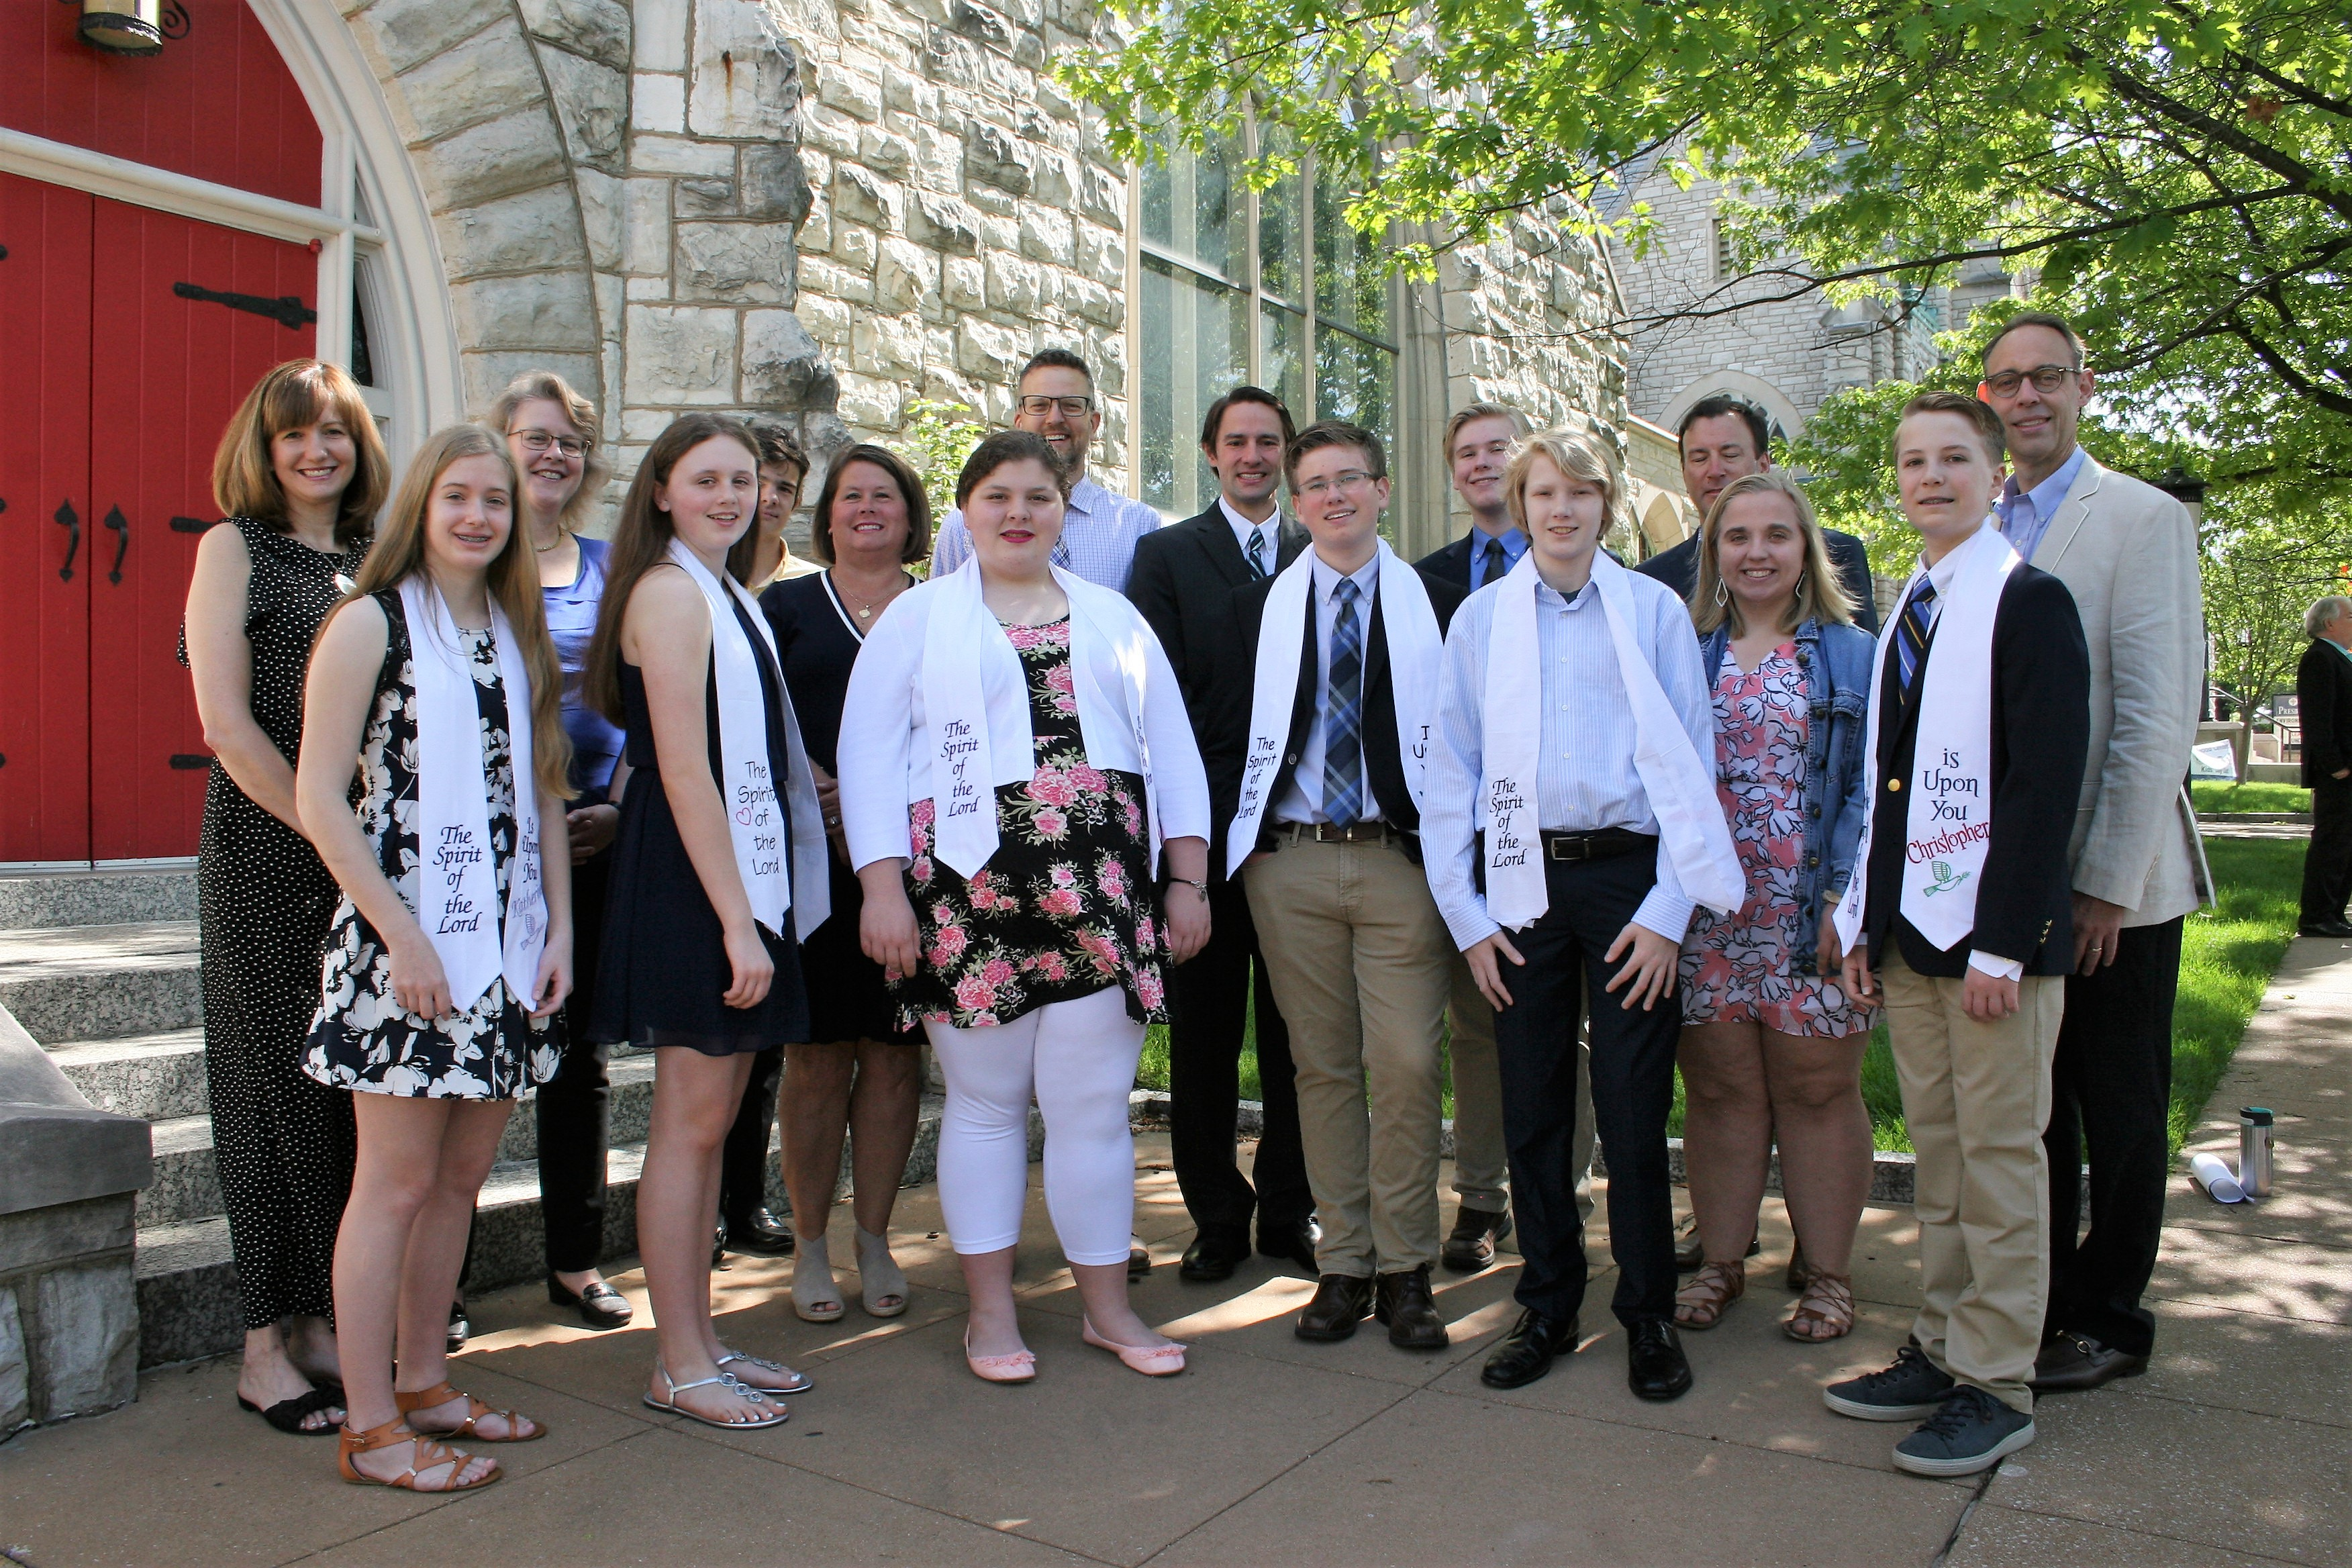 2019 Confirmation Class with Mentors